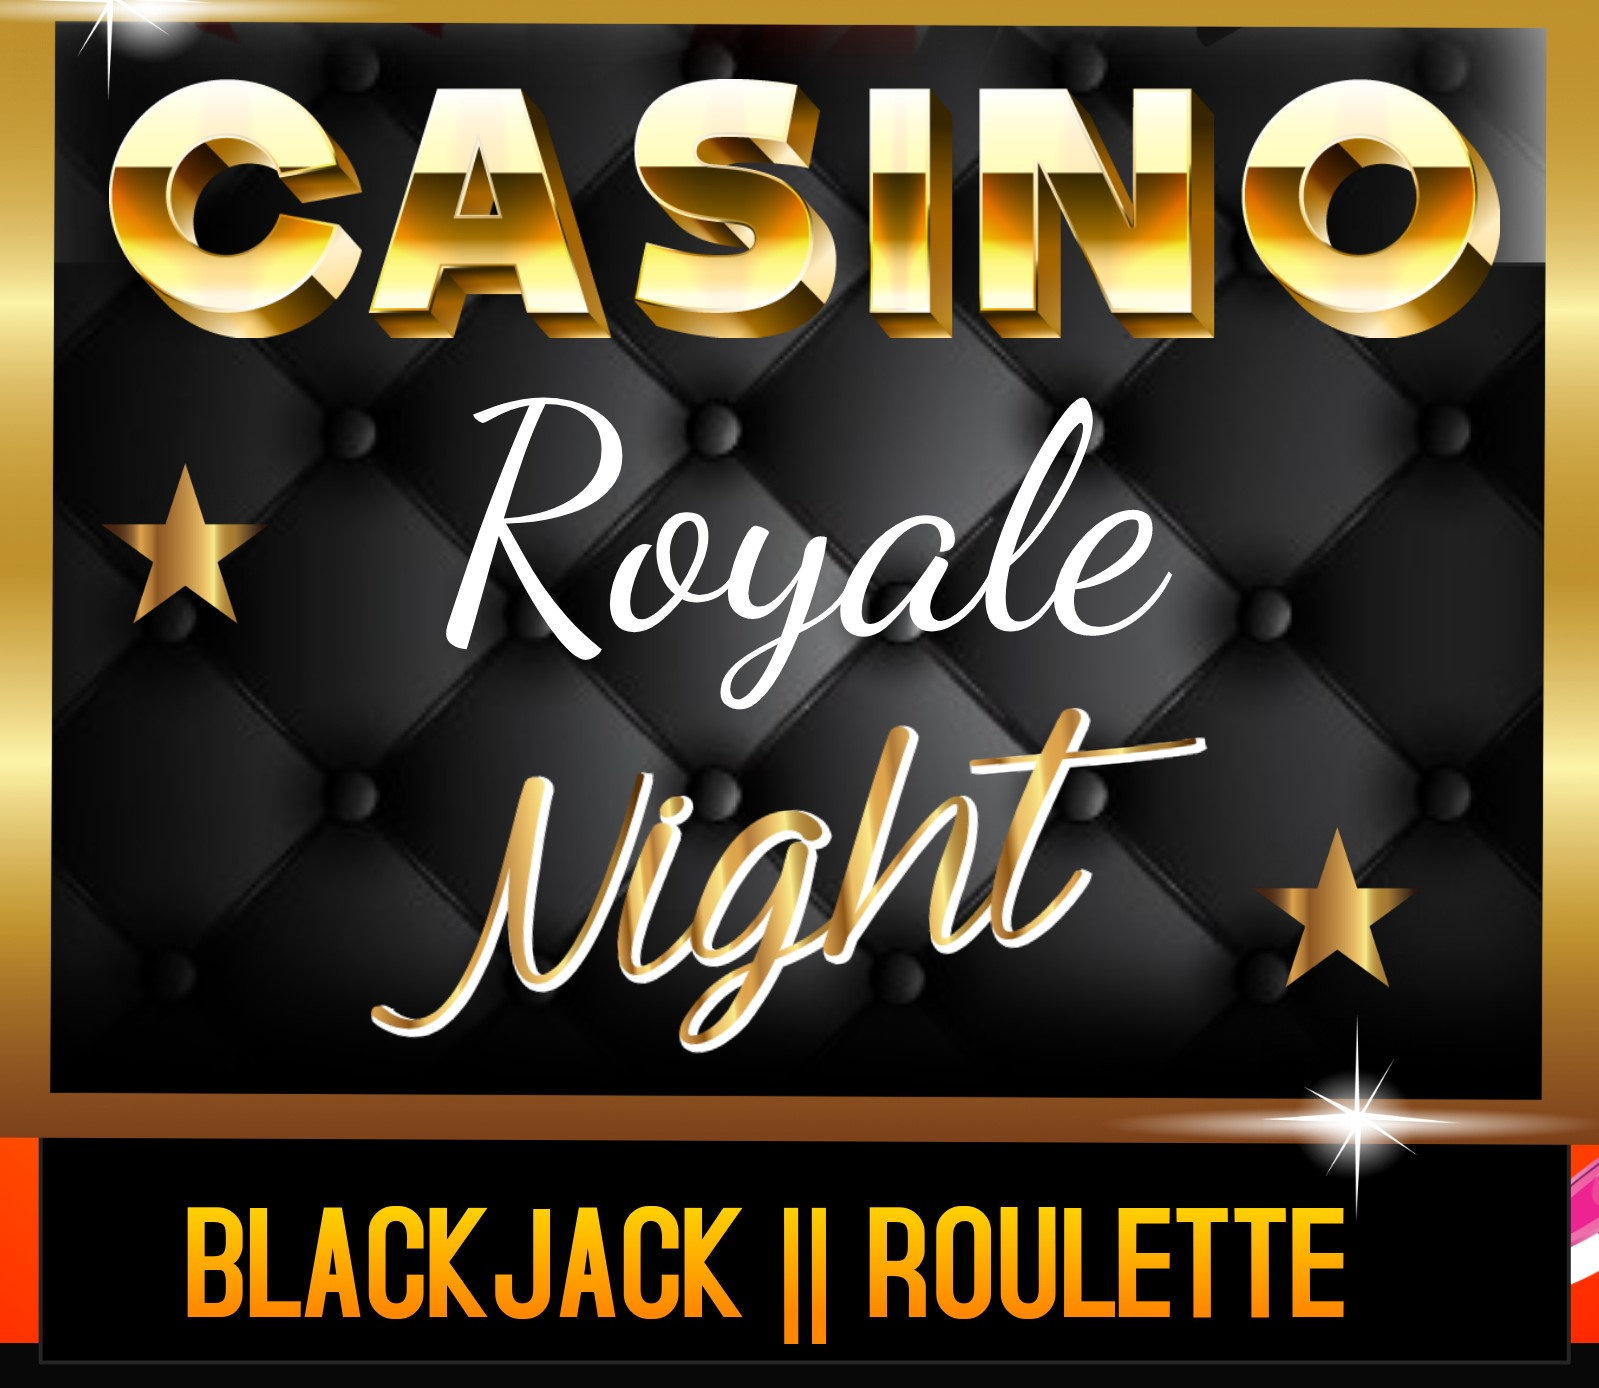 Casino Royale James Bond Night banner image